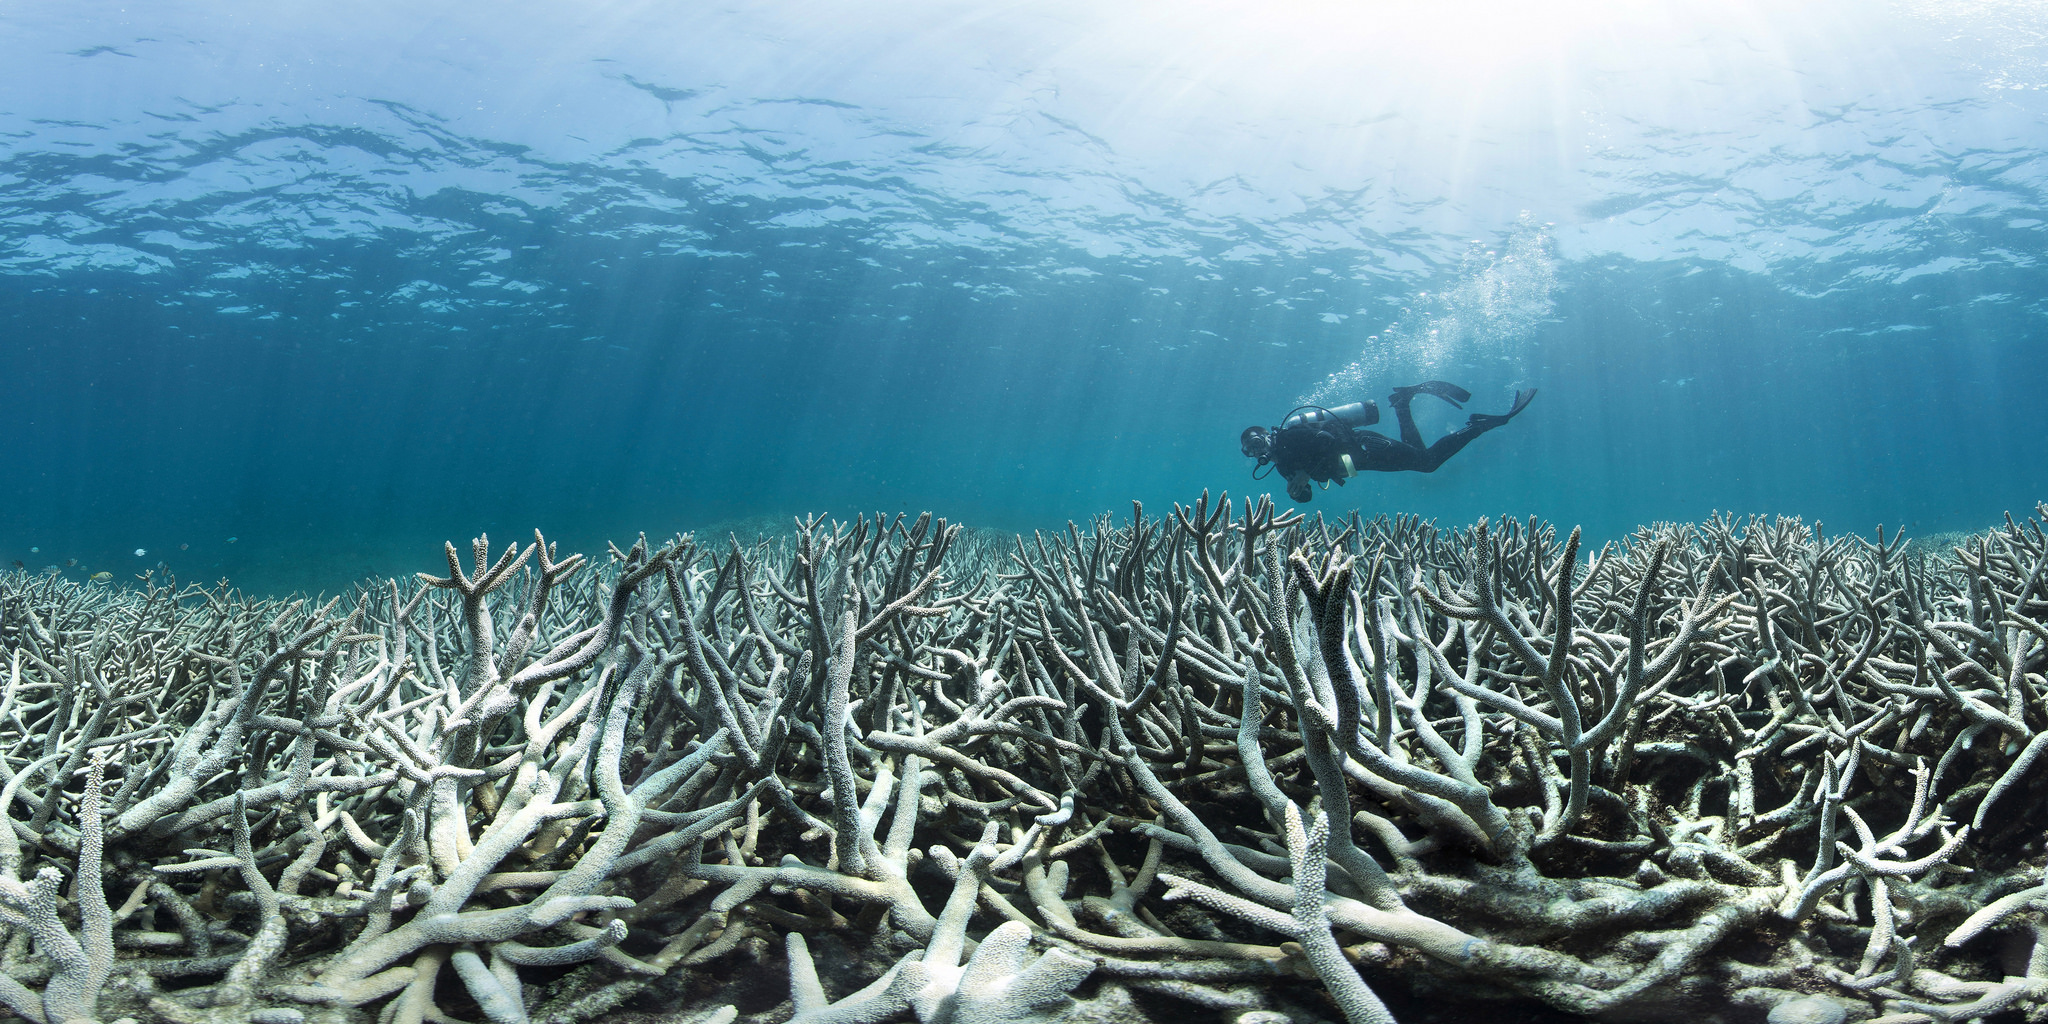 Coral bleaching at Heron Island Feb 2016_credit The Ocean Agency / XL Catlin Seaview Survey / Richard Vevers